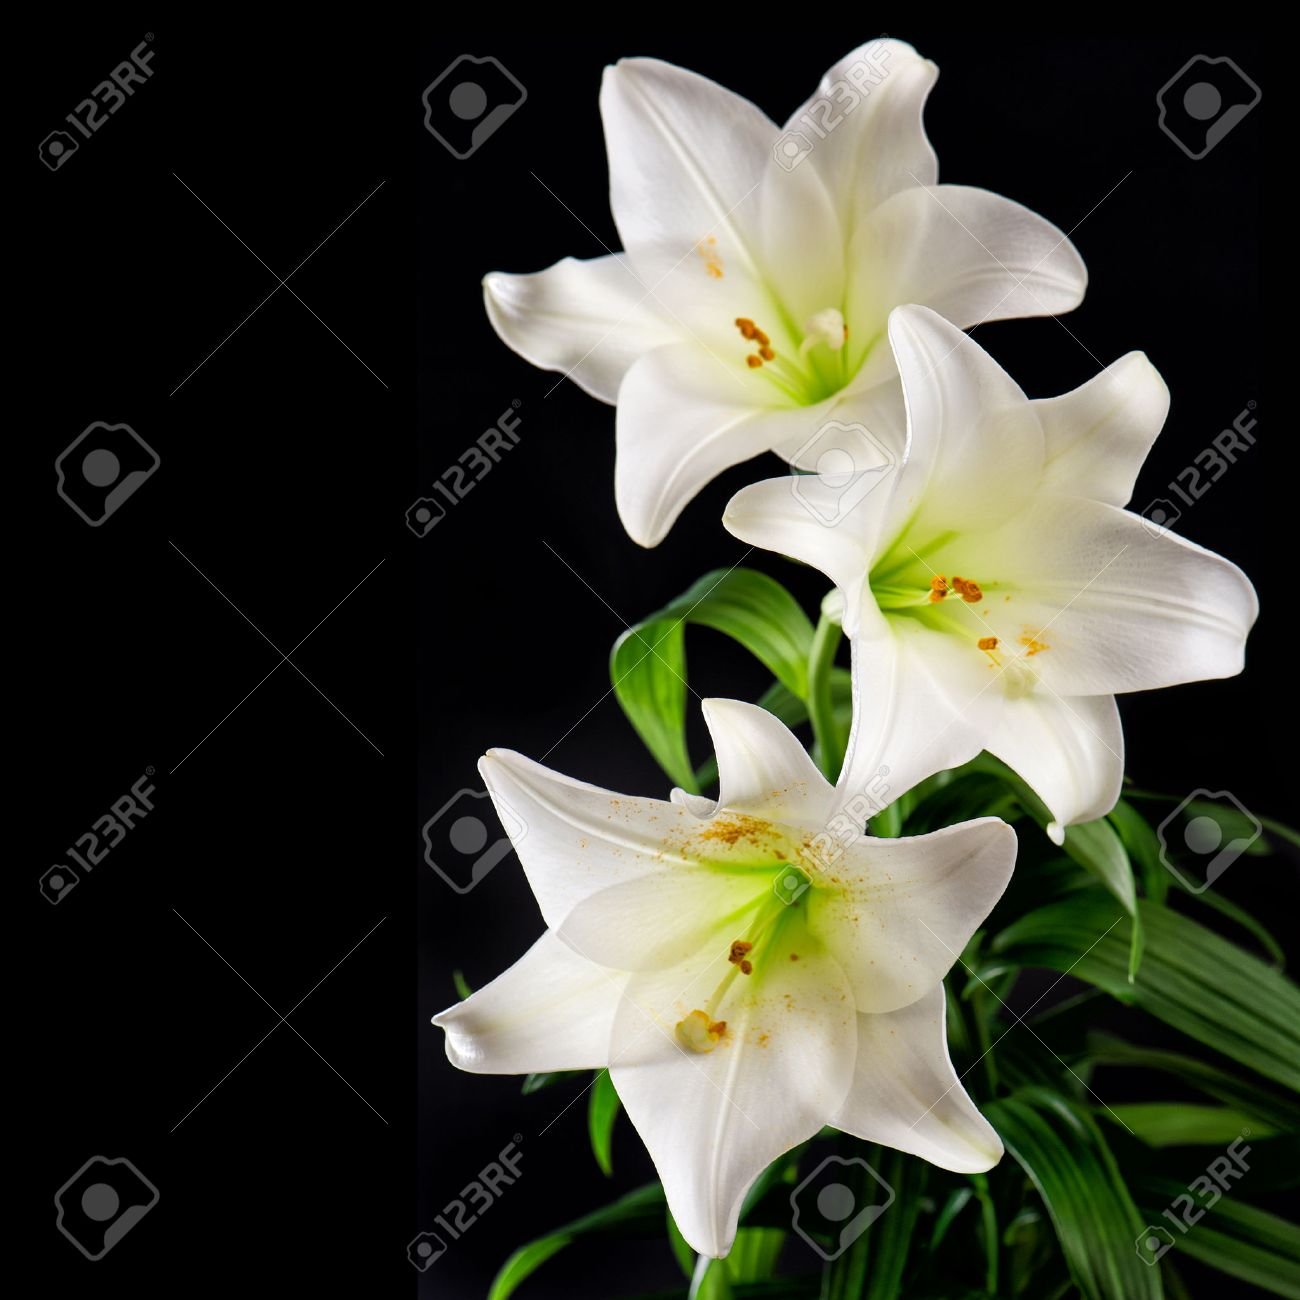 White lily flowers bouquet on black background condolence card stock photo white lily flowers bouquet on black background condolence card concept altavistaventures Images